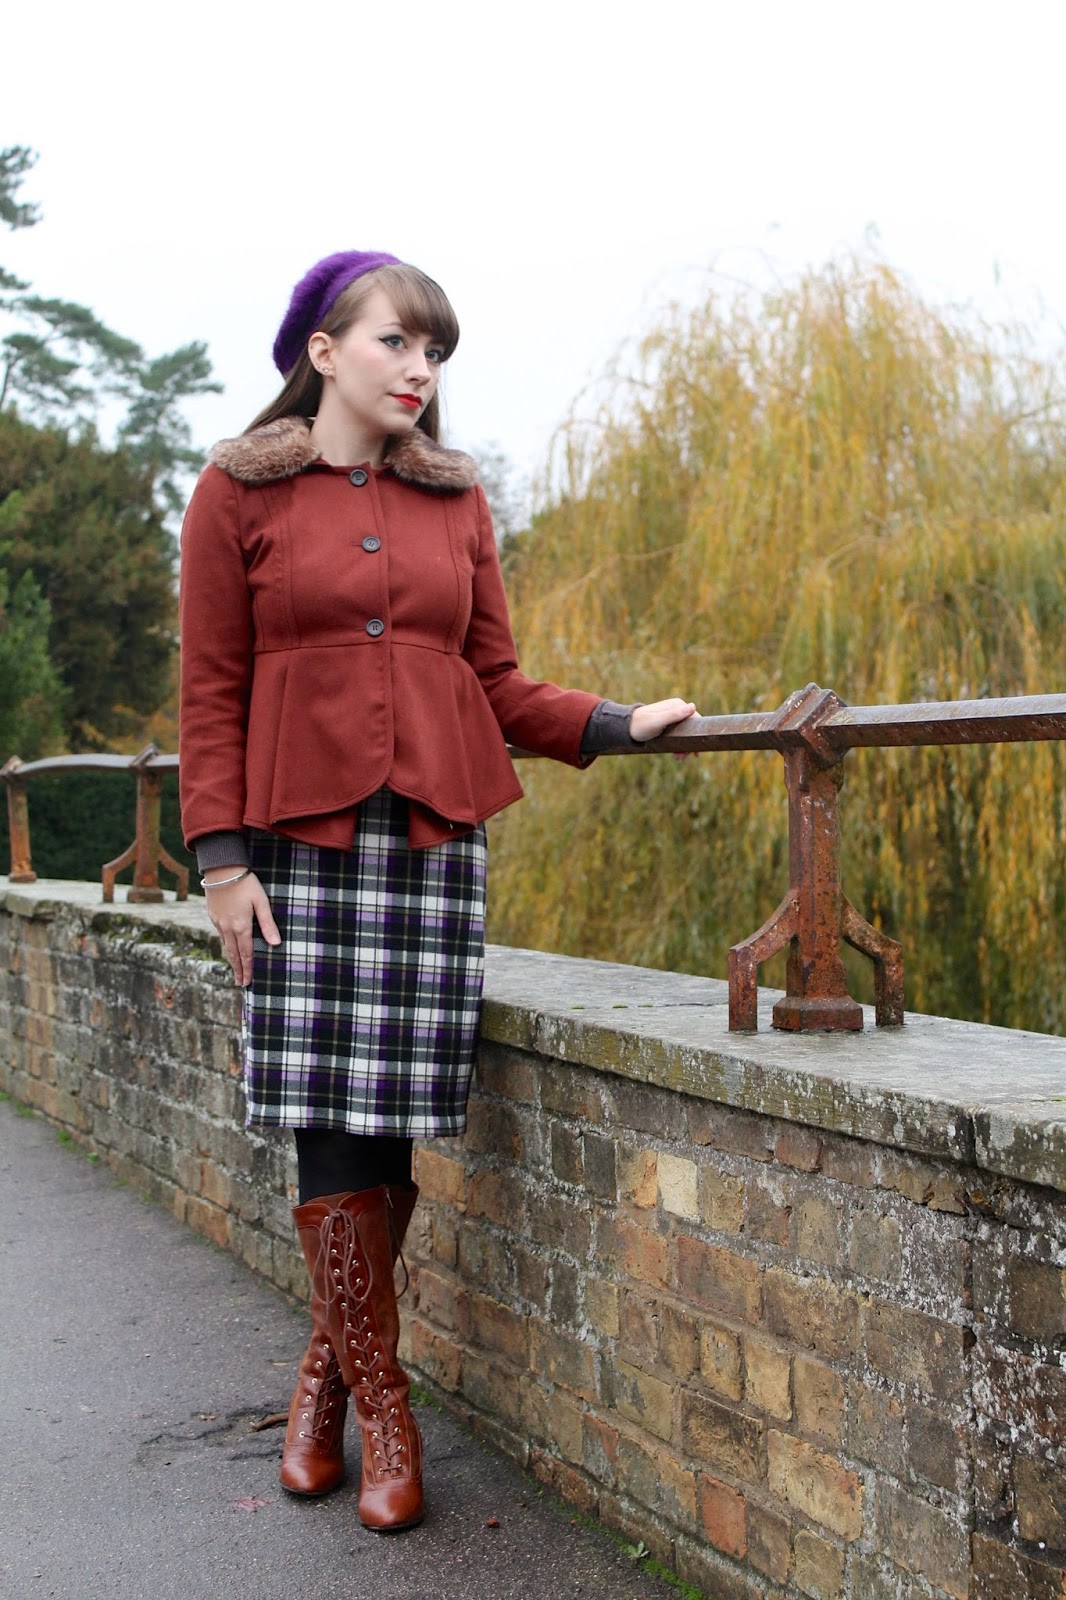 Fluffy beret, fur collared jacket, plaid dress and tan knee-high boots